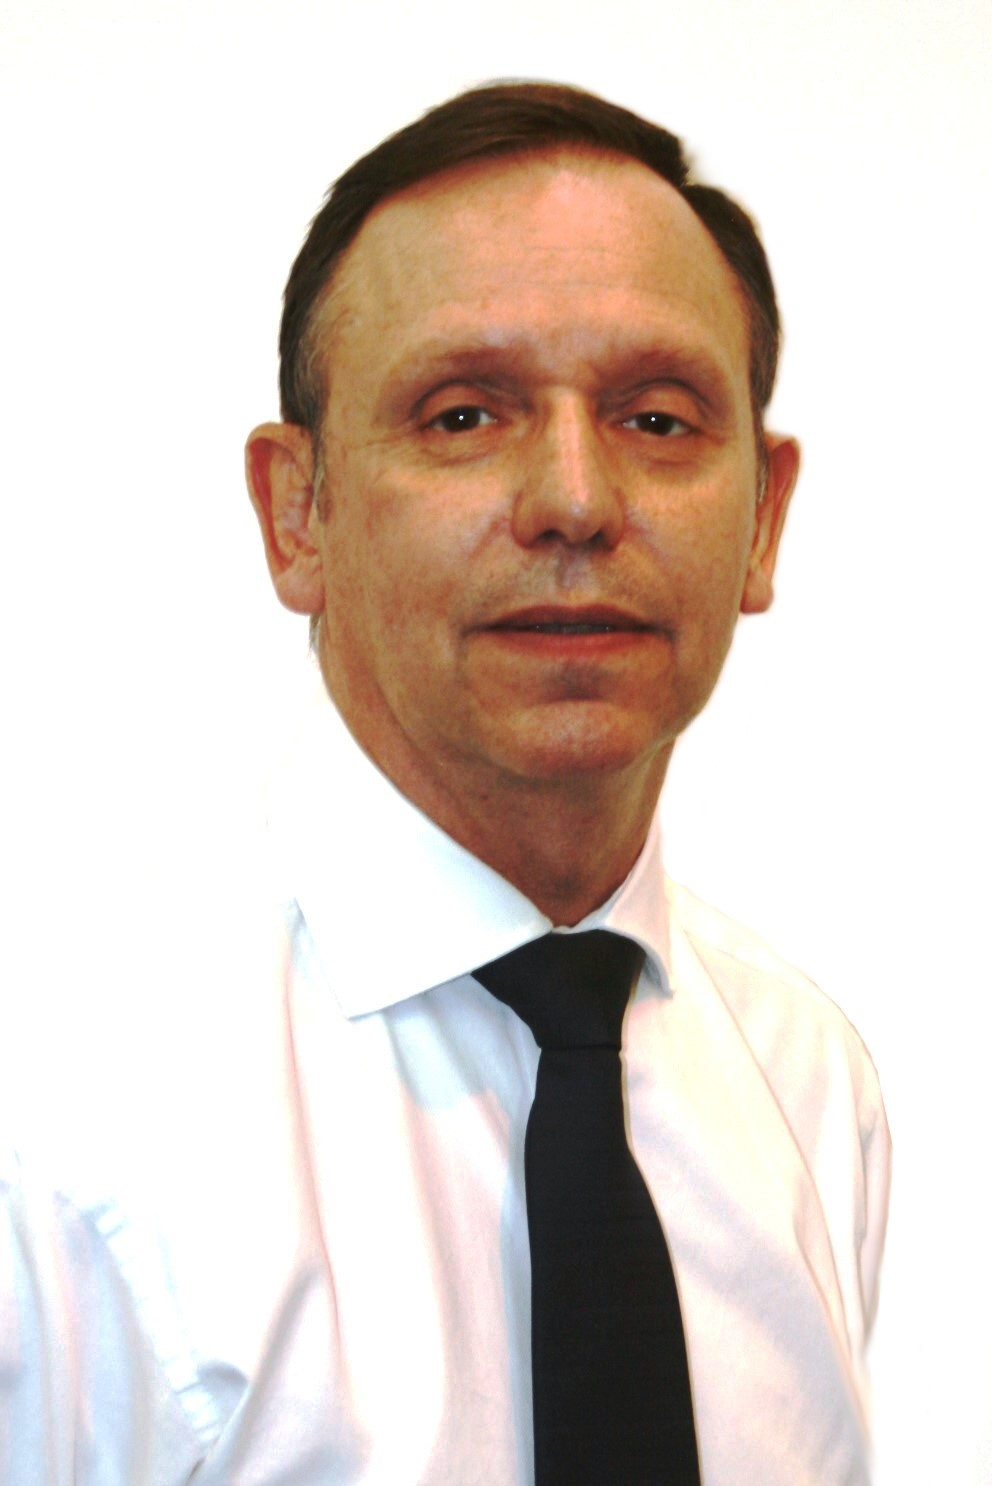 Stephen Cowell